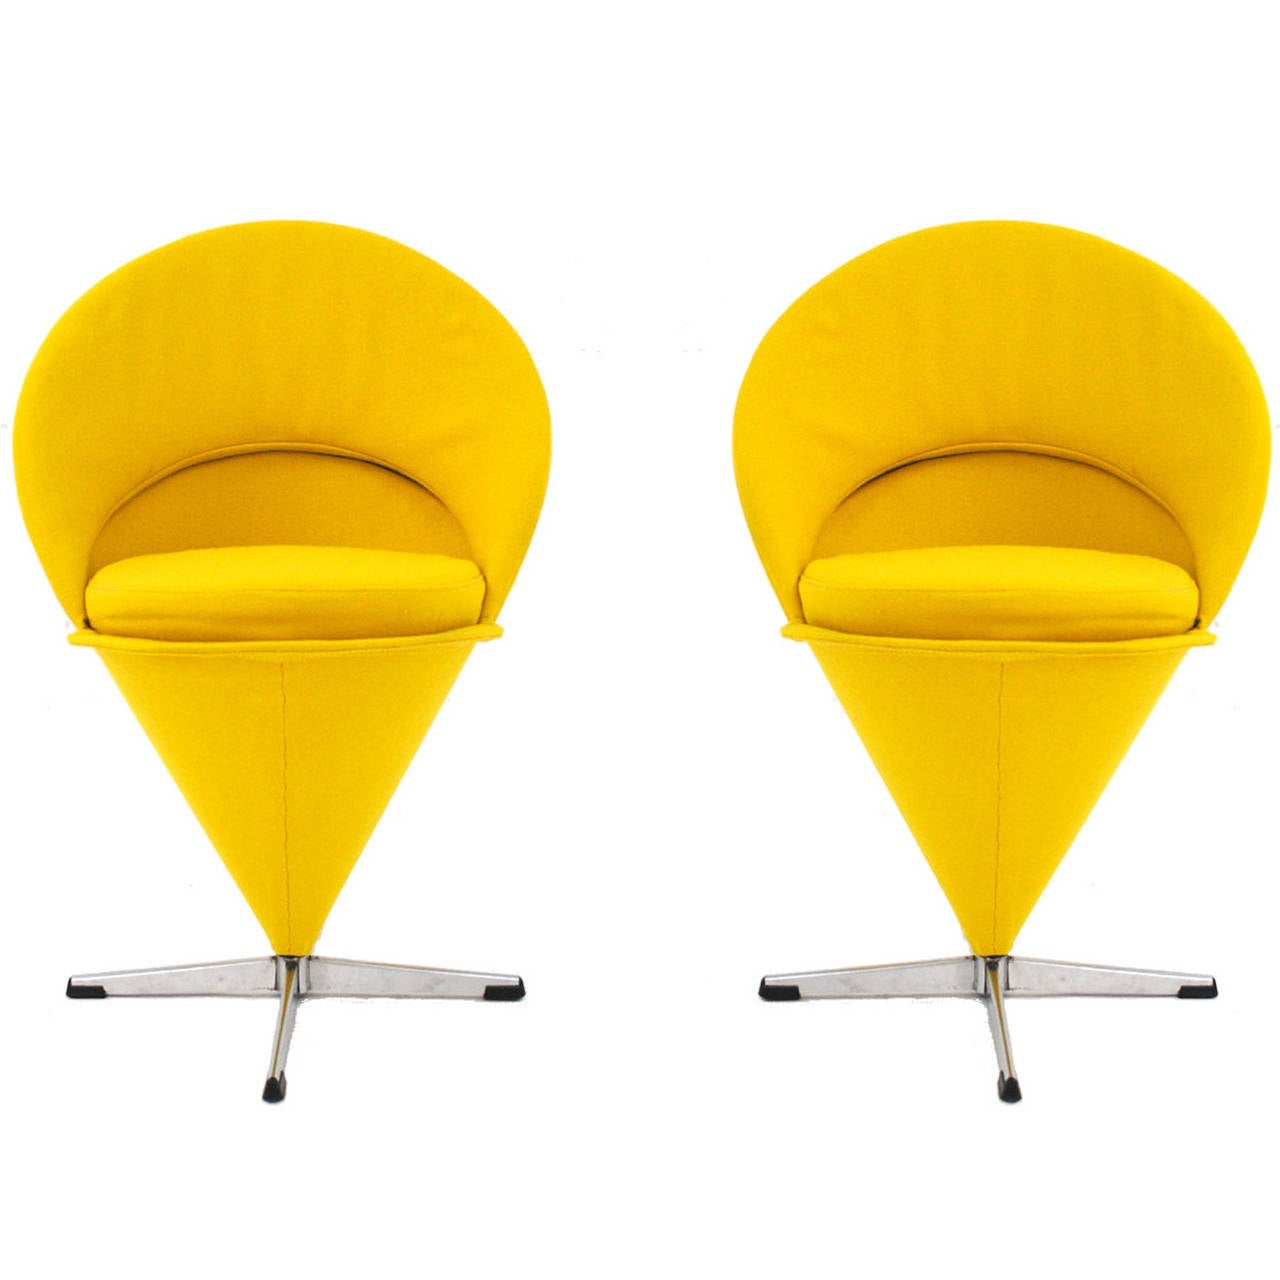 Pair of cone chairs designed by verner panton at 1stdibs - Who designed the panton chair ...